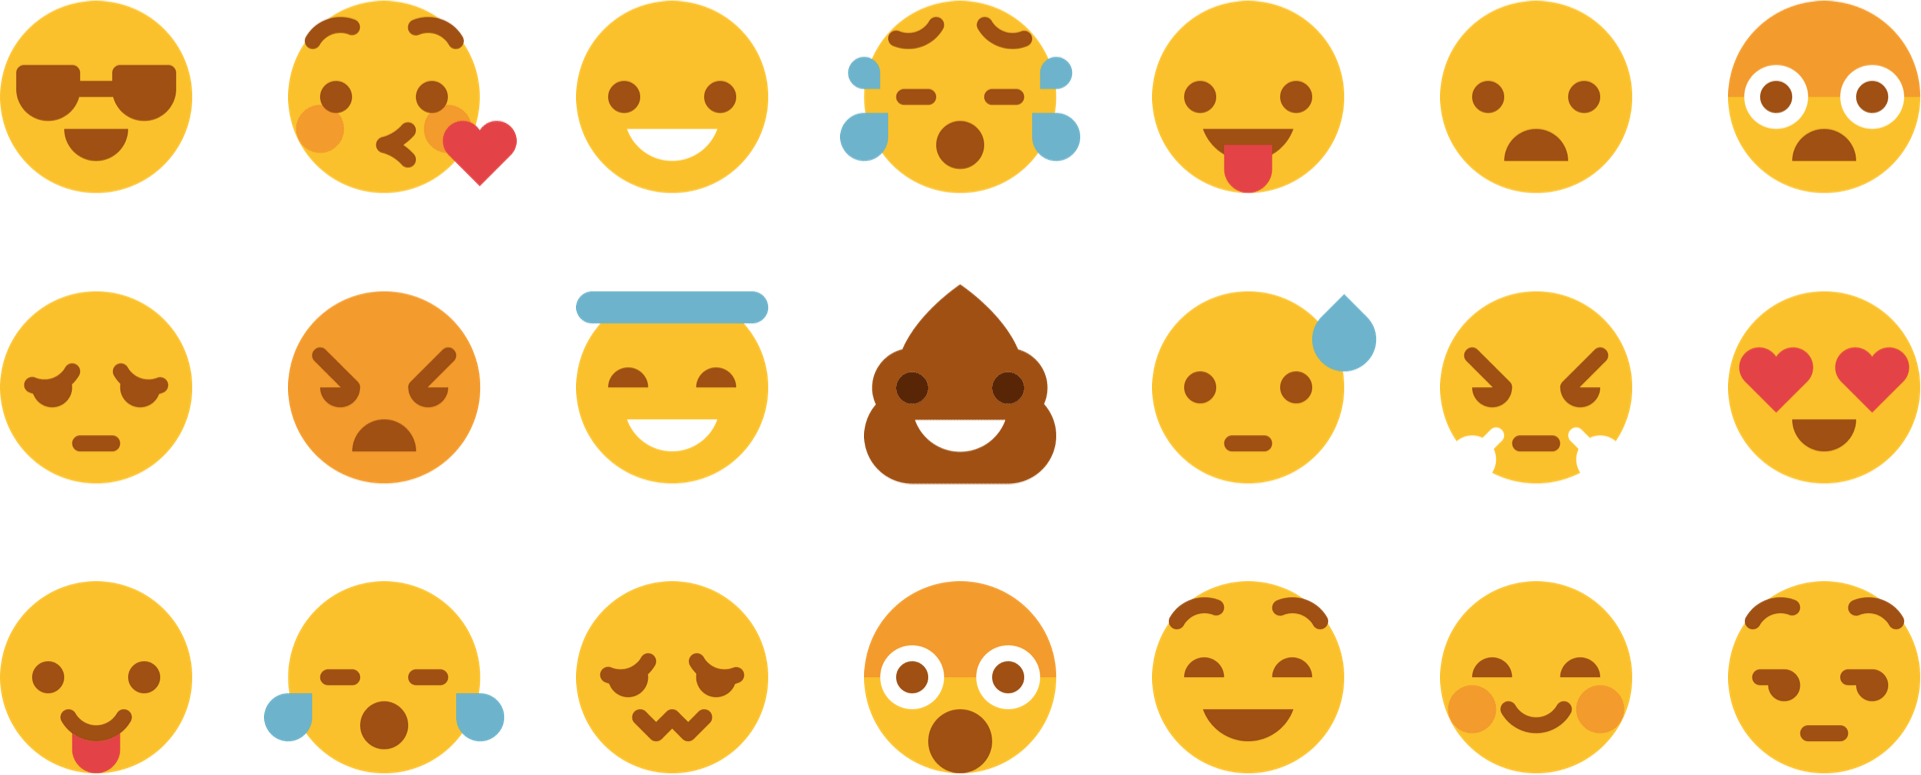 17 Best images about emoji inspo on Pinterest | Coffee time ...